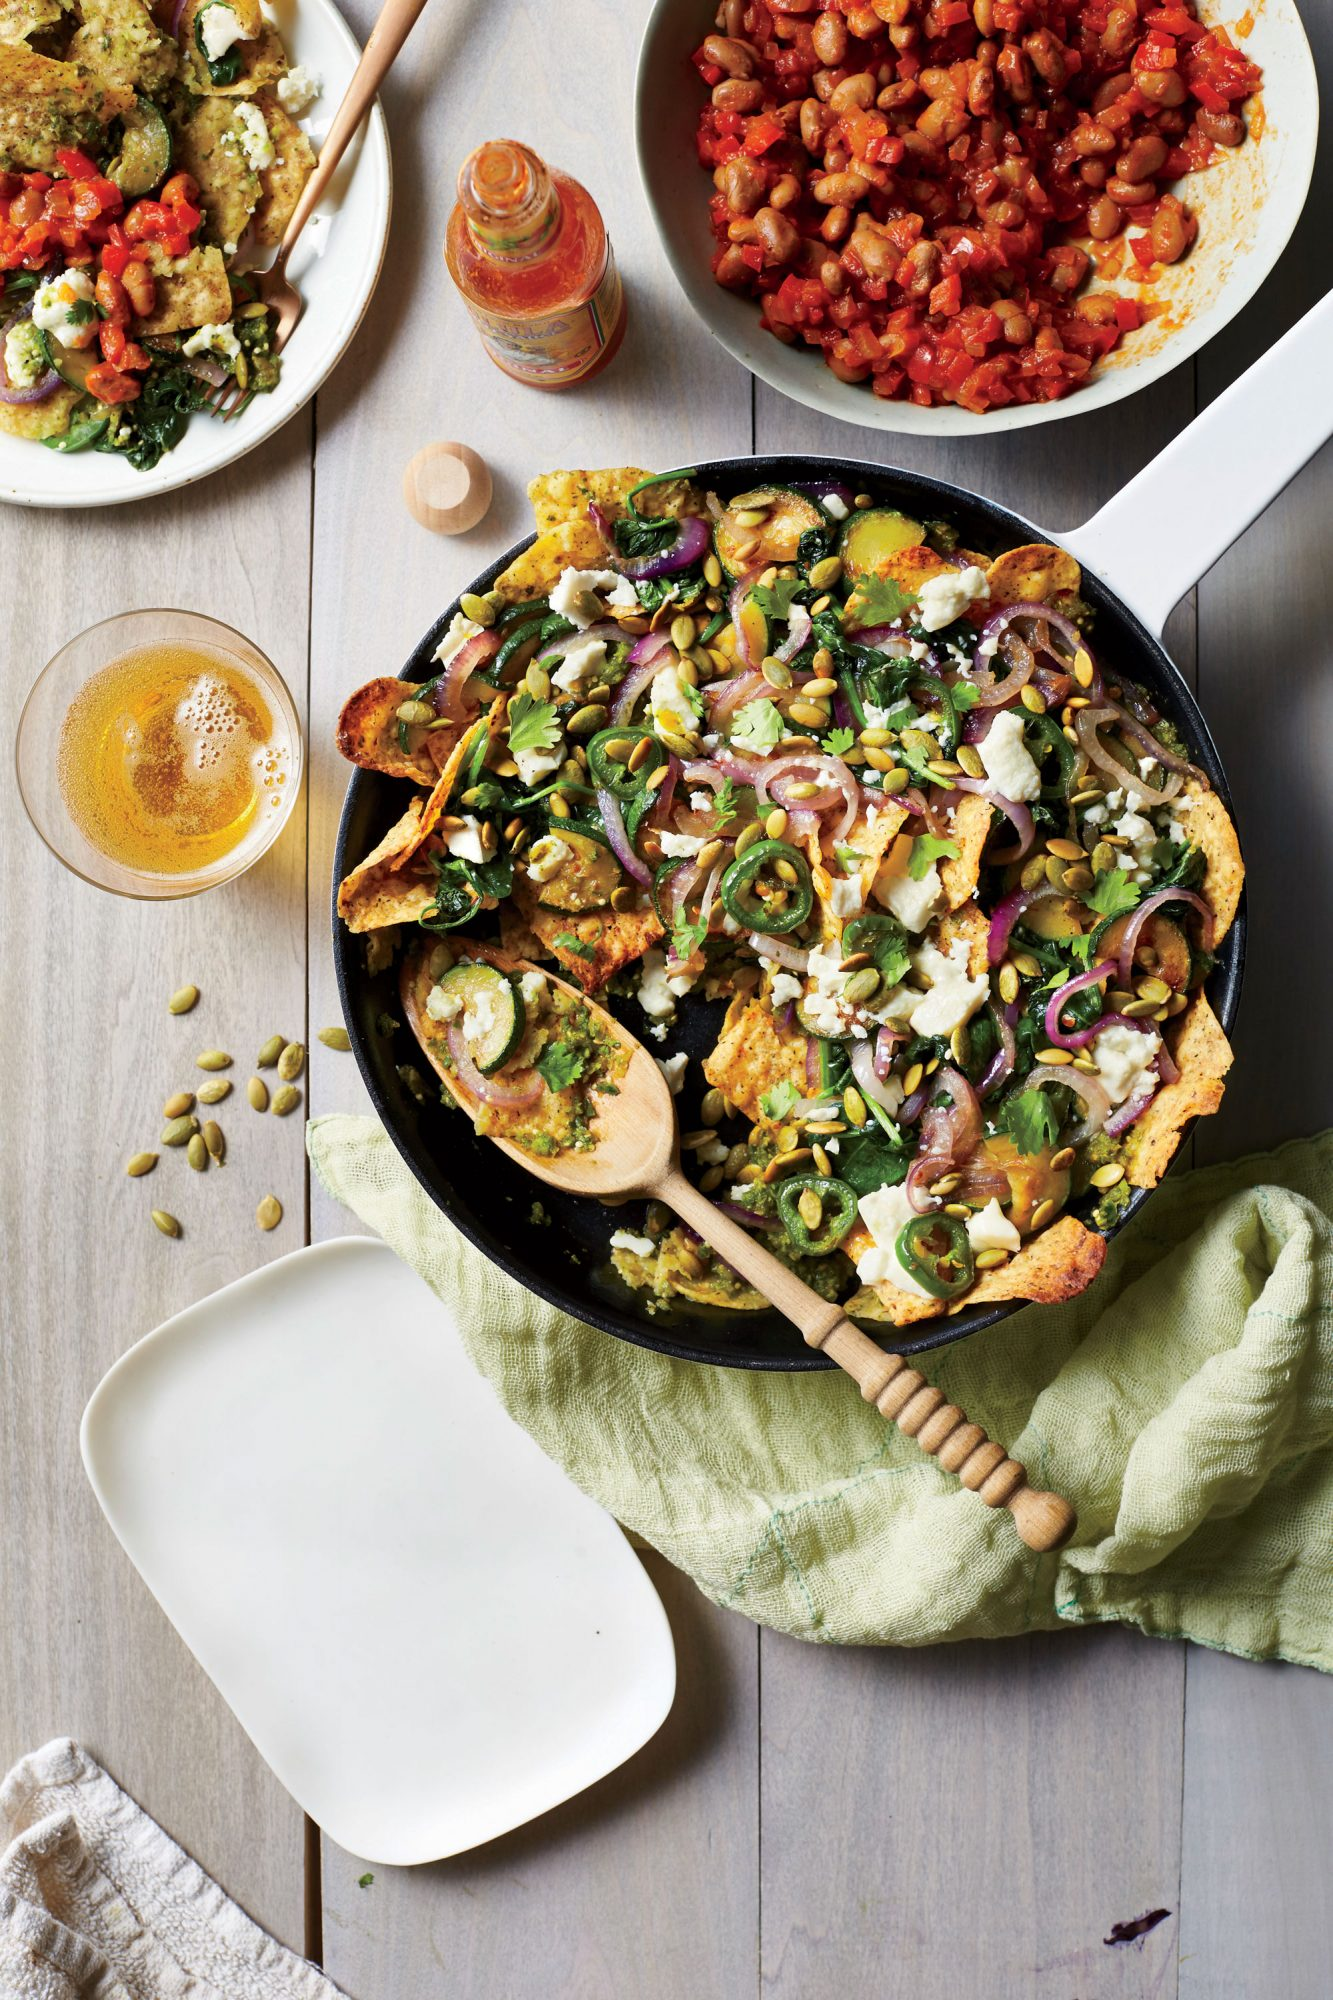 Zucchini and Spinach Chilaquiles image